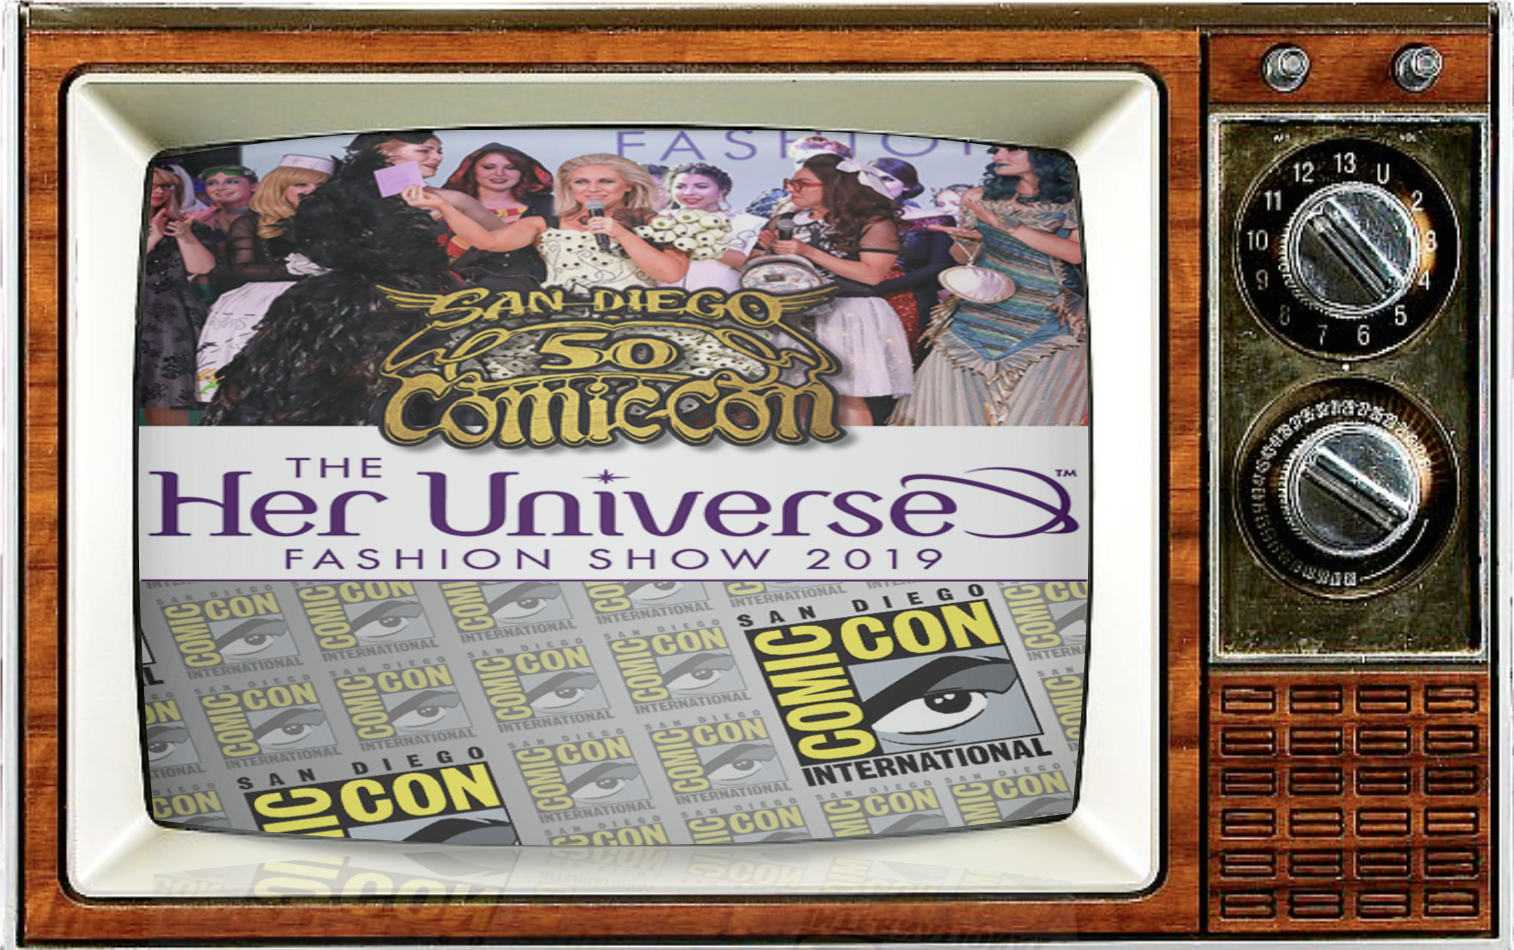 SMC Episode 82: Comic-Con at 50: In Fashion & Empowered An SDCC Preview Show, w/ Ashley Eckstein